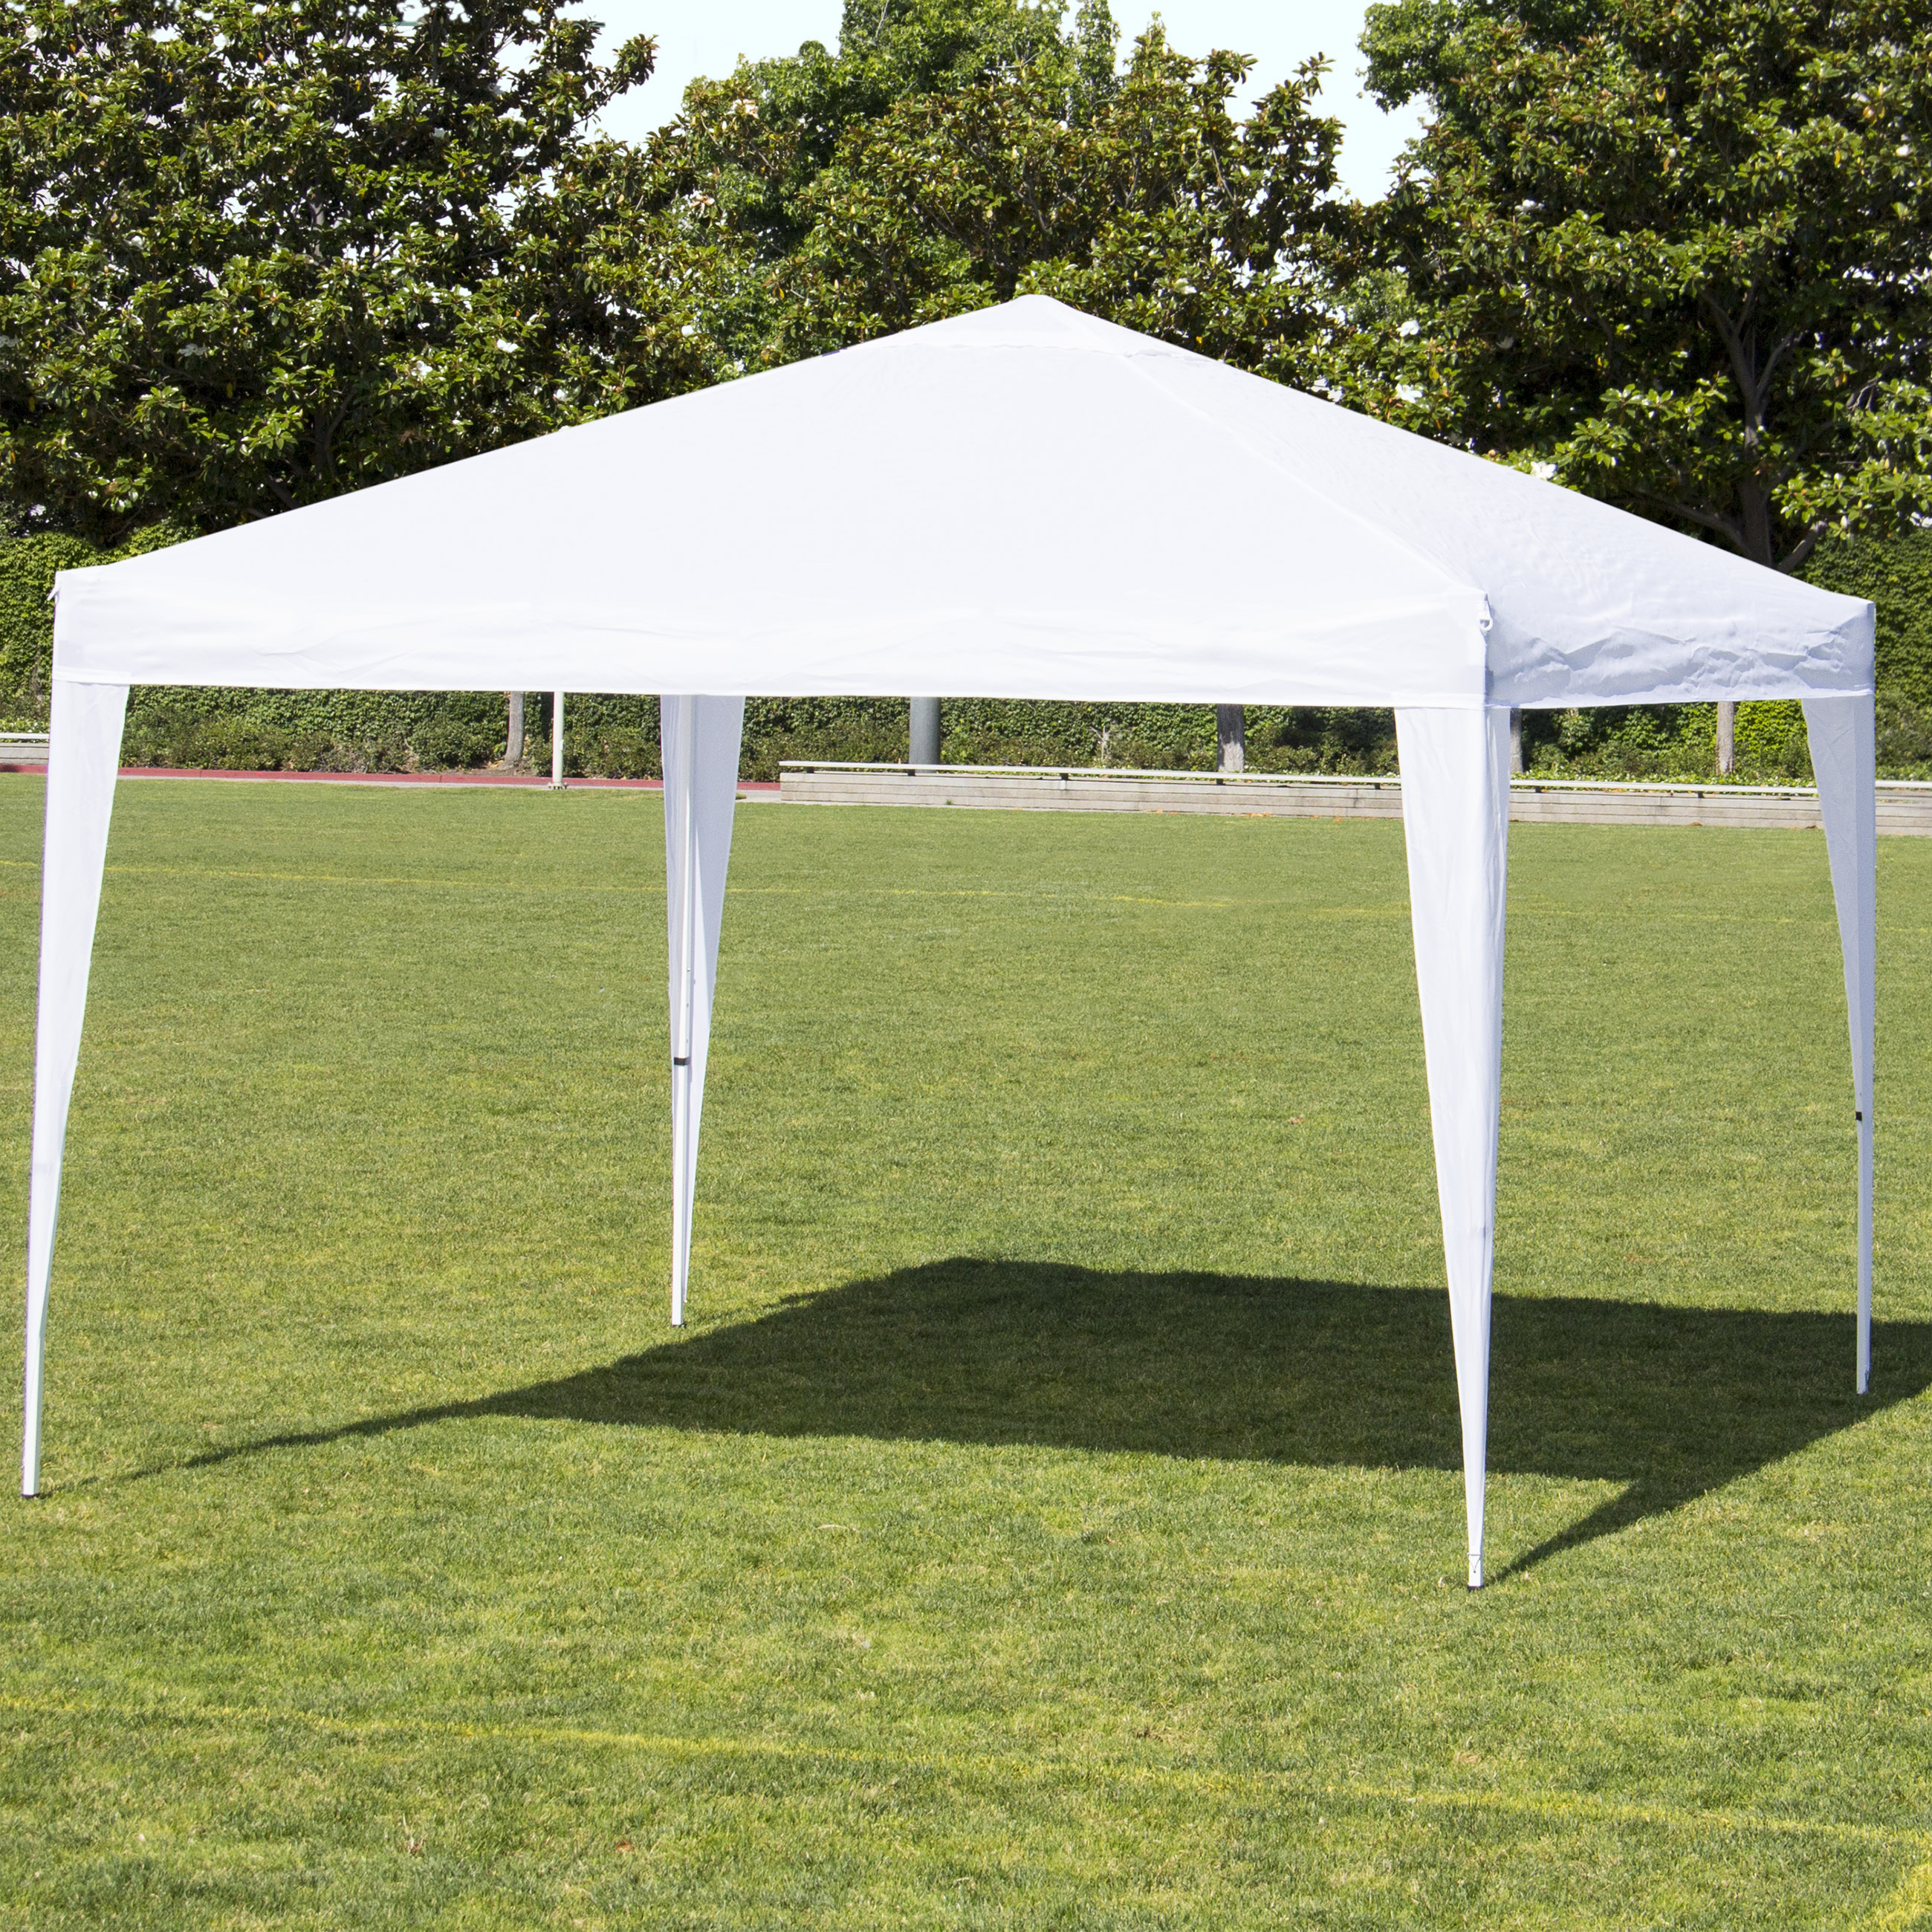 Best Choice Products 10' x 10' Pop Up Canopy With Carrying Bag (